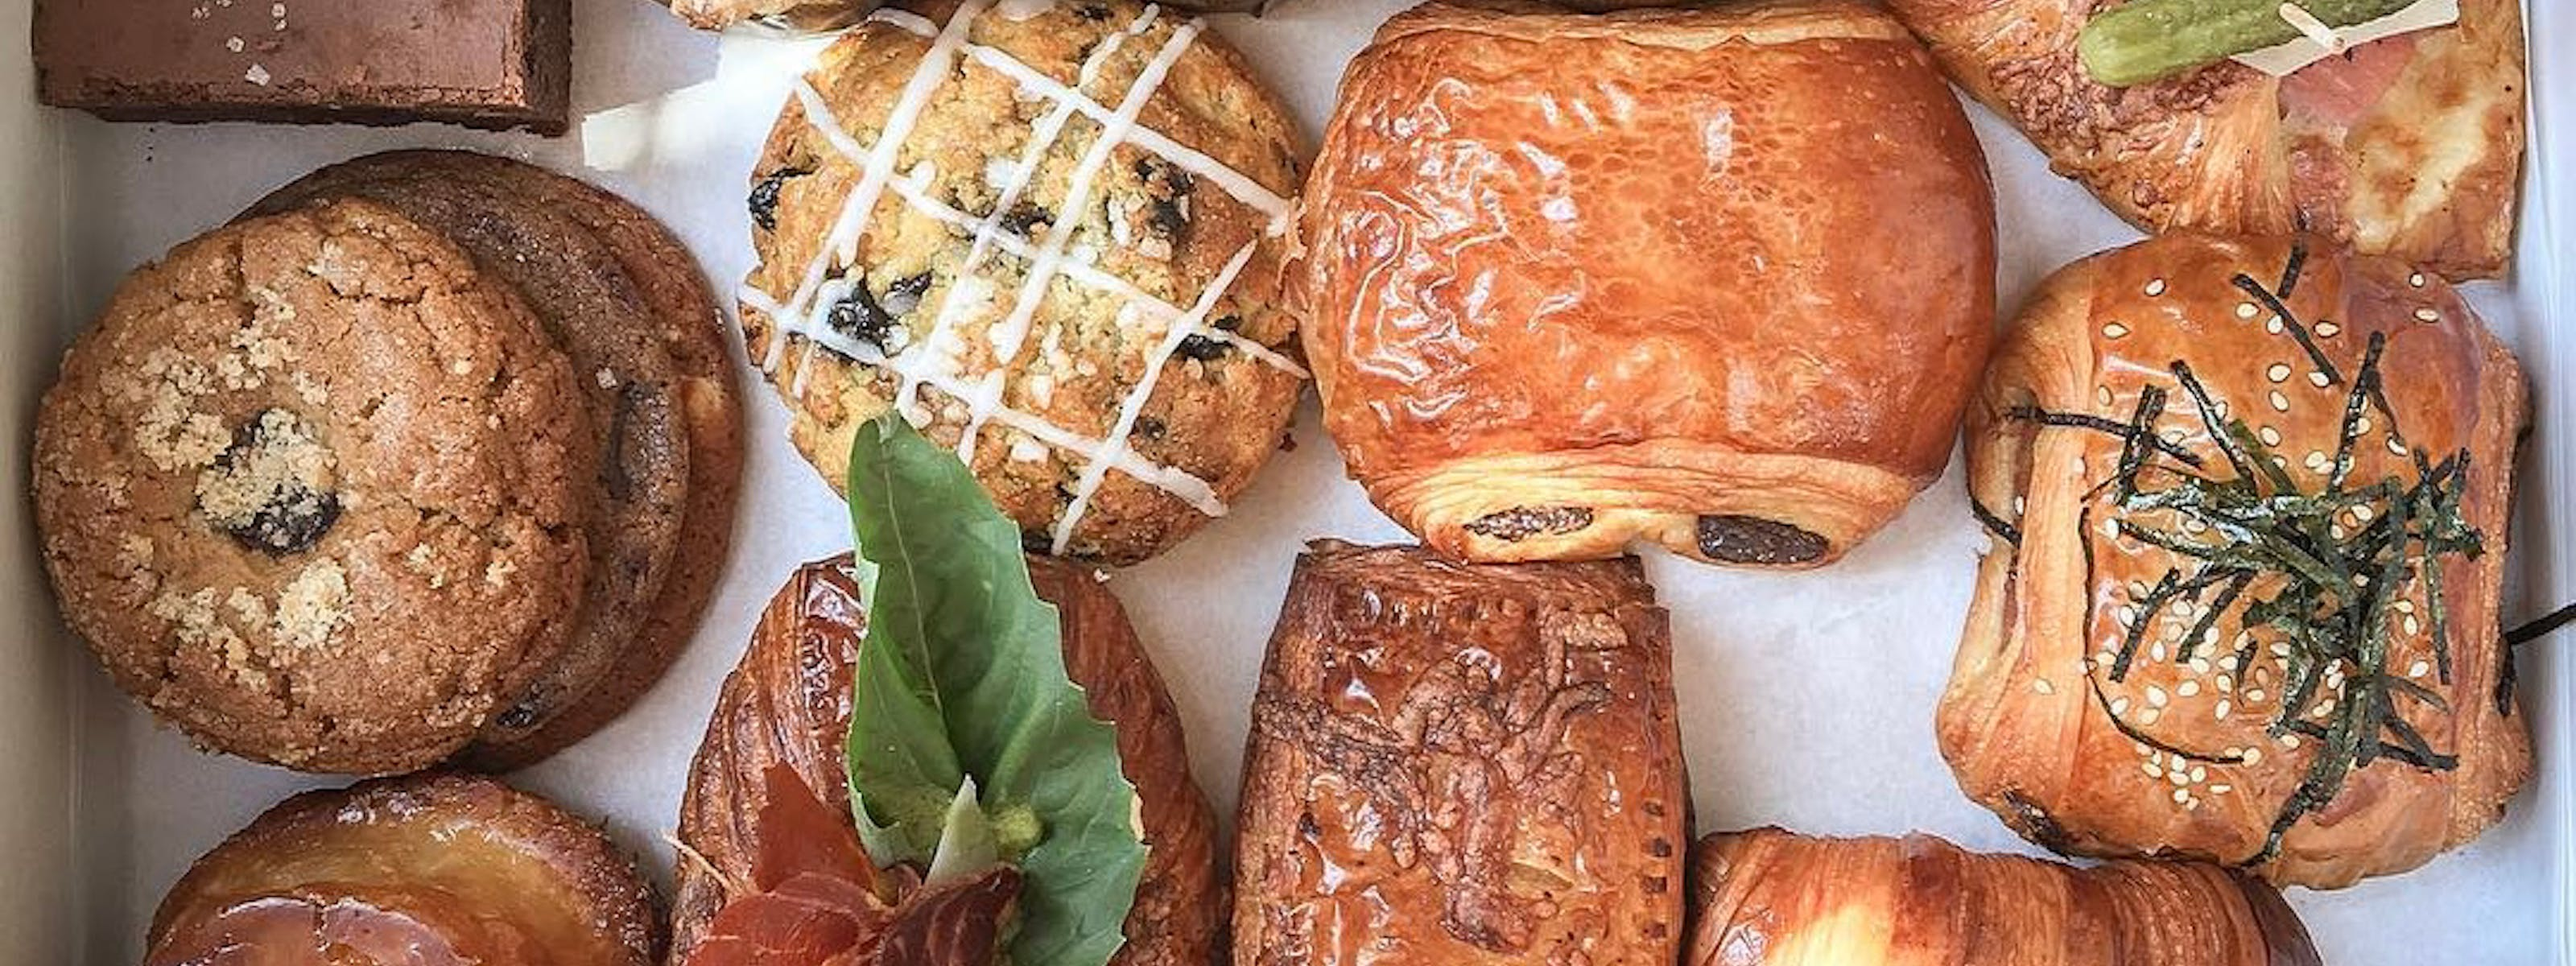 Meet 10 Of LA's Best Asian-Owned Bakeries - Los Angeles - The Infatuation